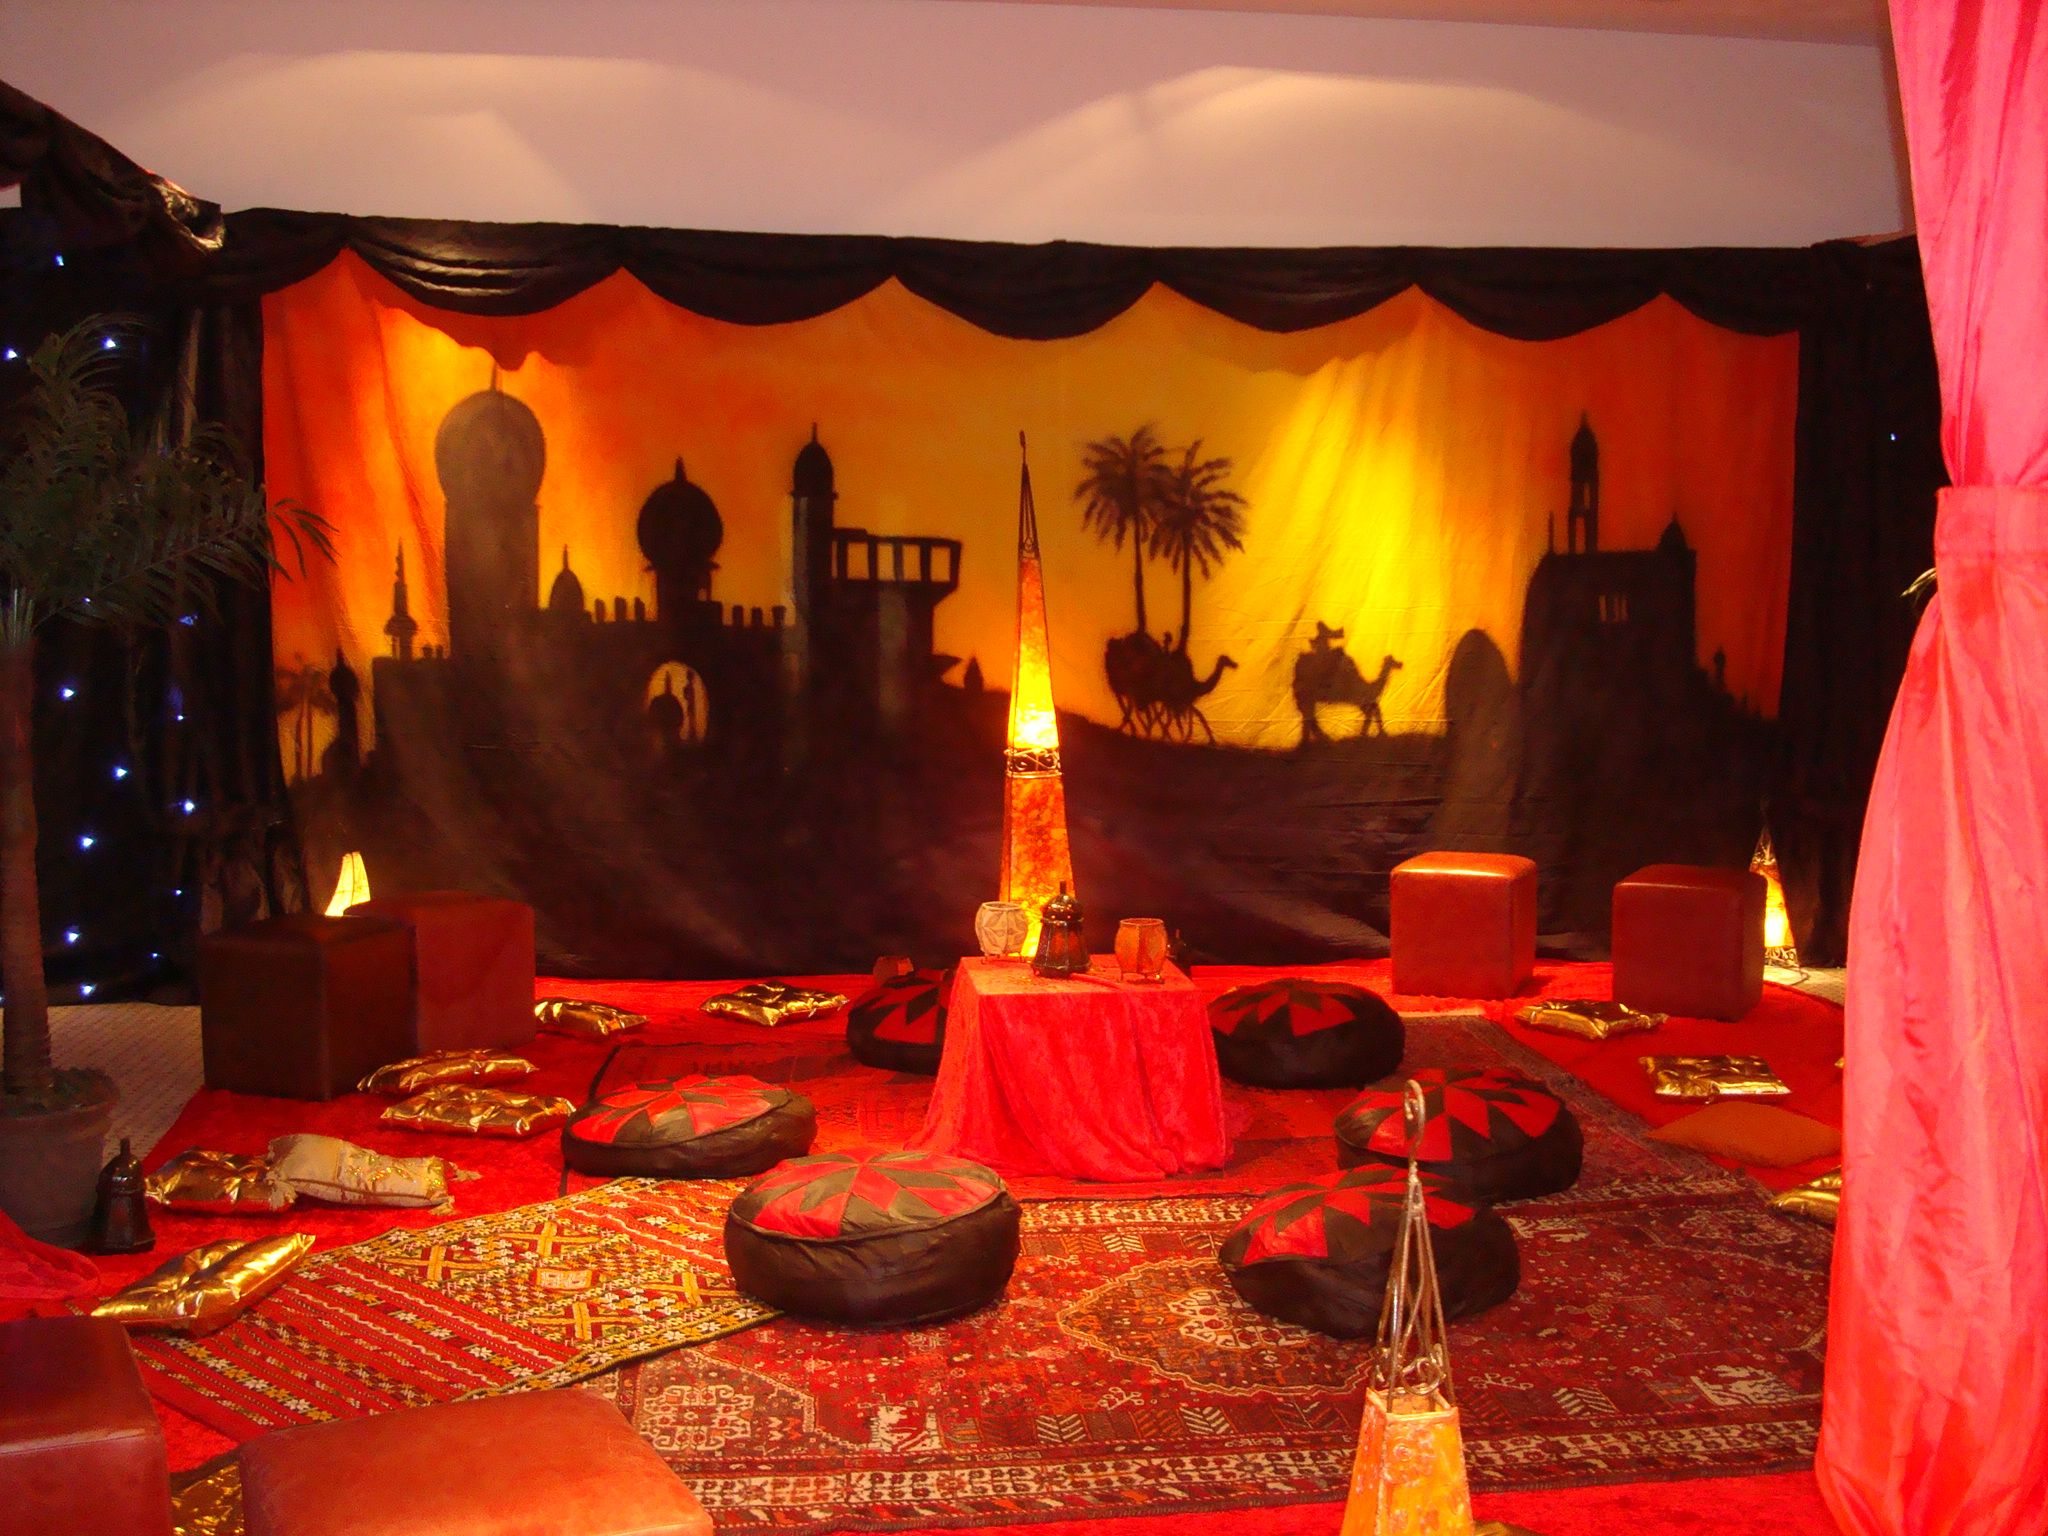 Party Planner Event Organisers And Childrens Parties ï½ London - Childrens birthday party ideas east london